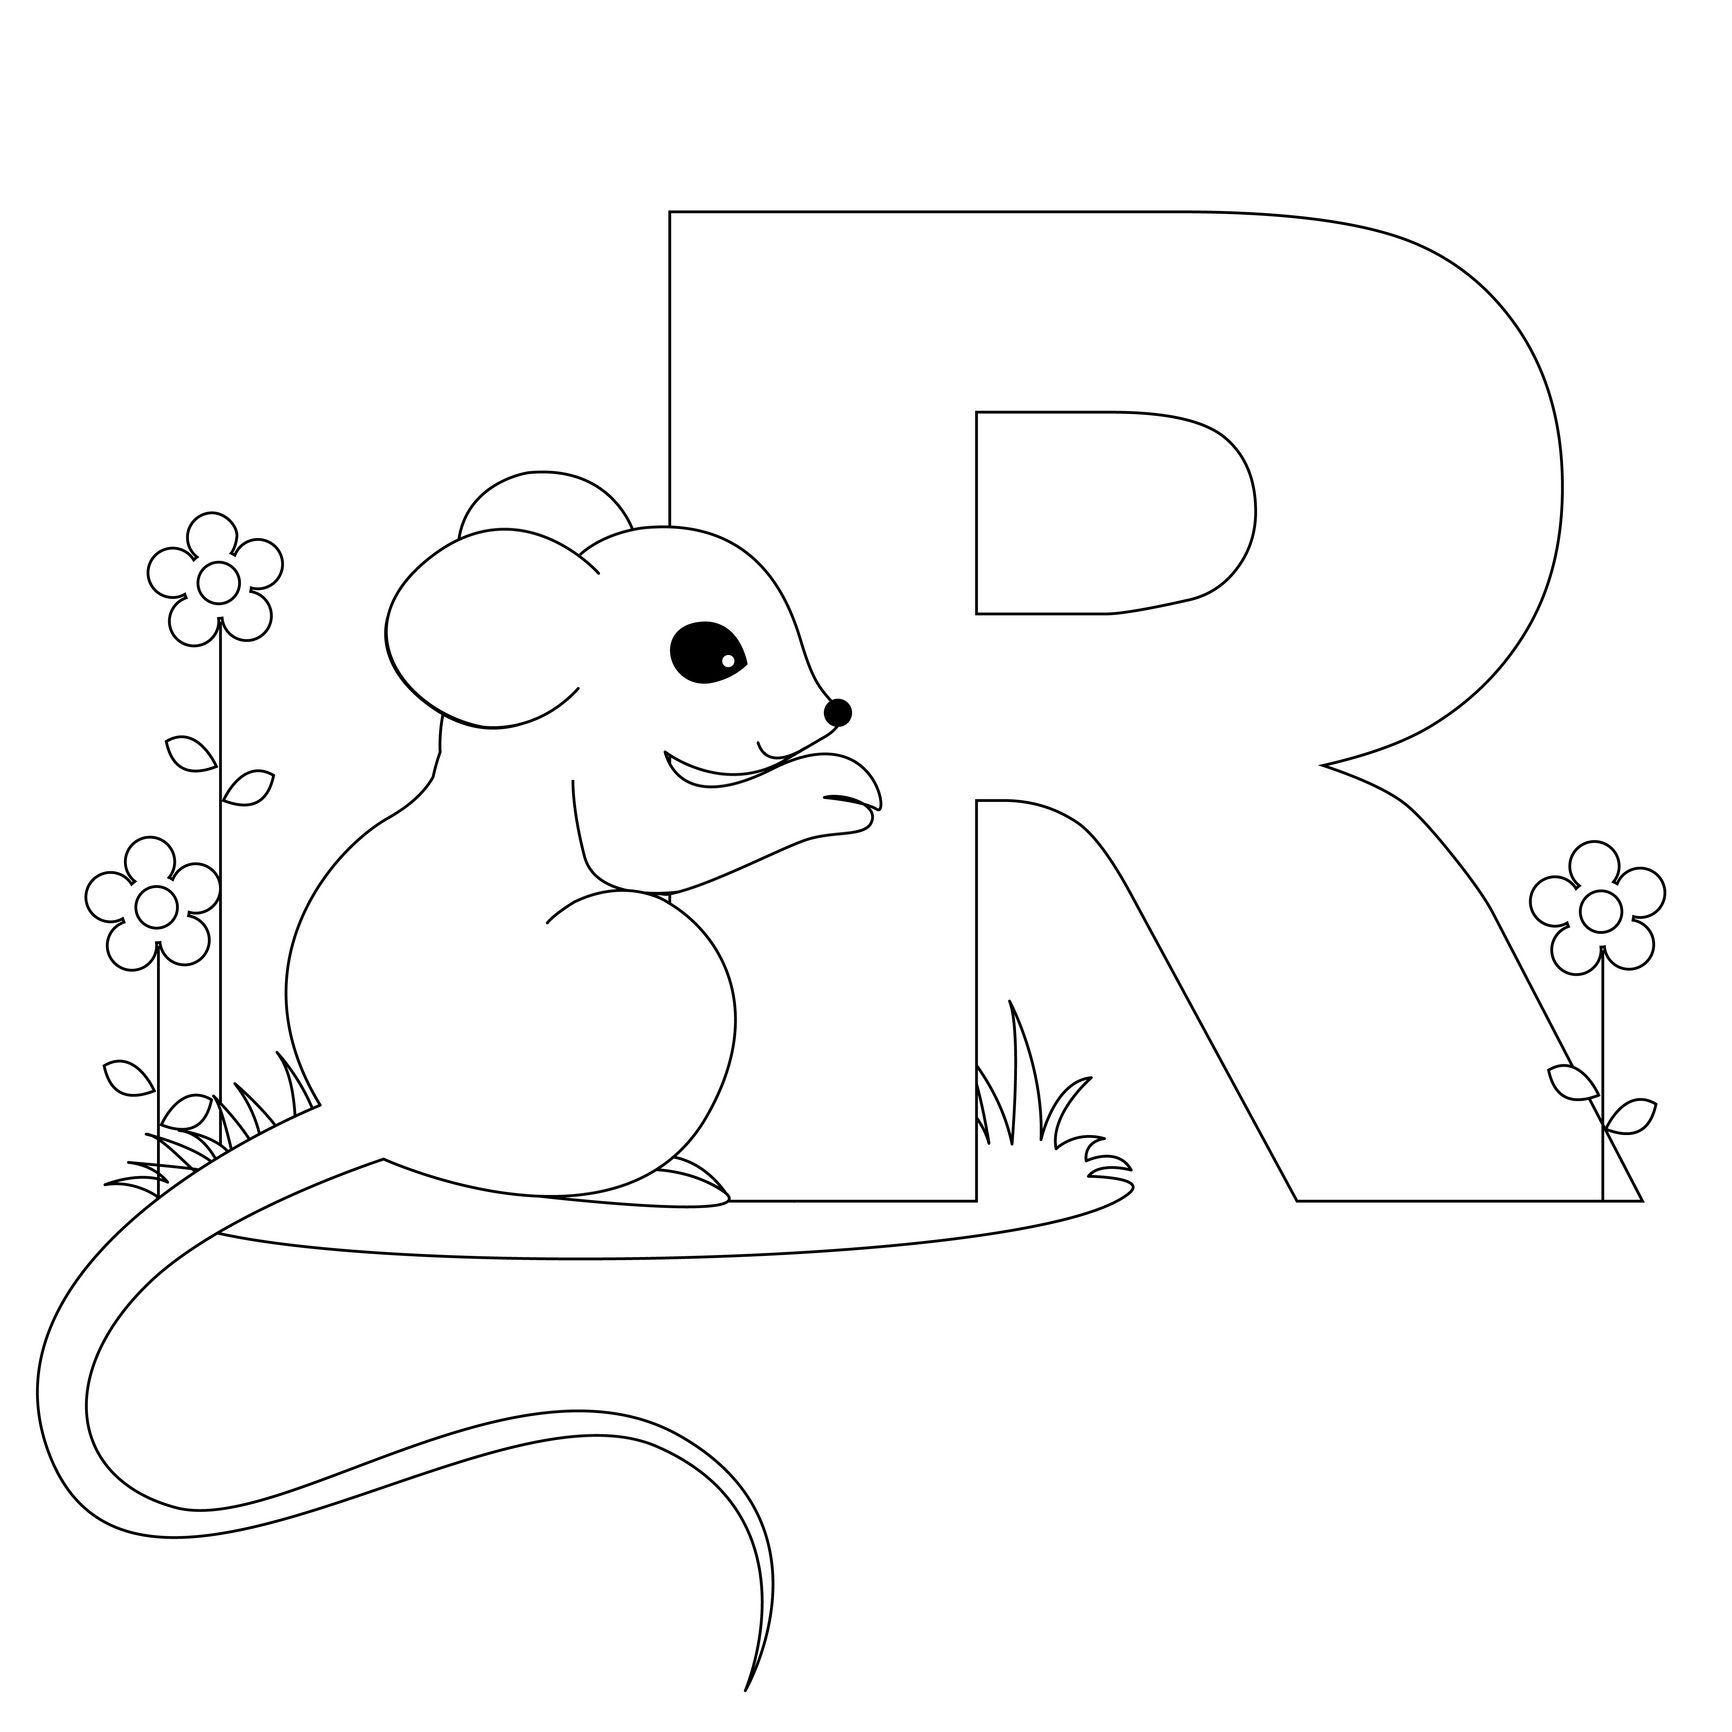 R coloring pages preschool - Animal Alphabet Letter R Is For Rat